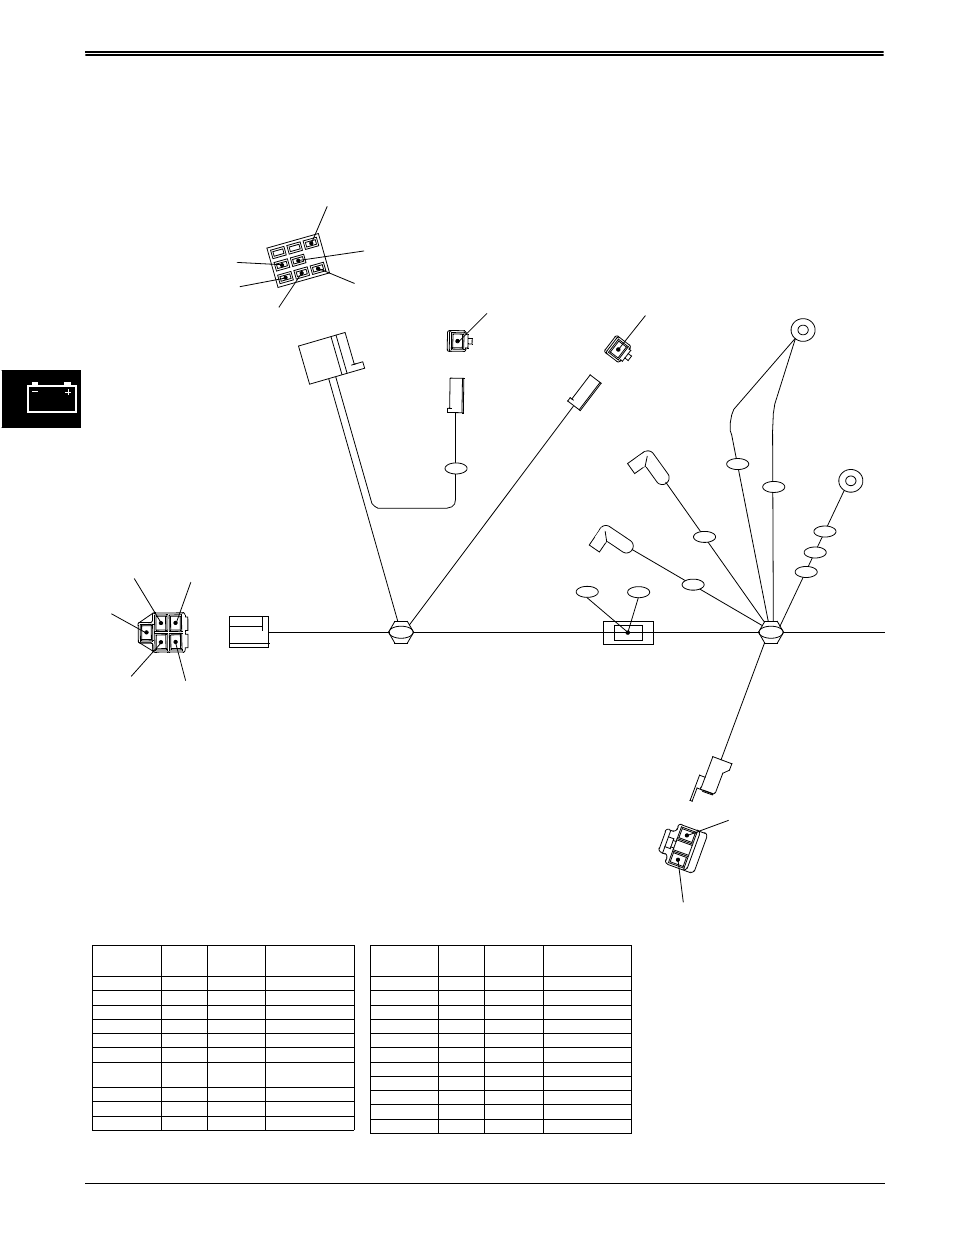 hight resolution of wiring harness diagrams electrical john deere stx38 user manual page 100 314